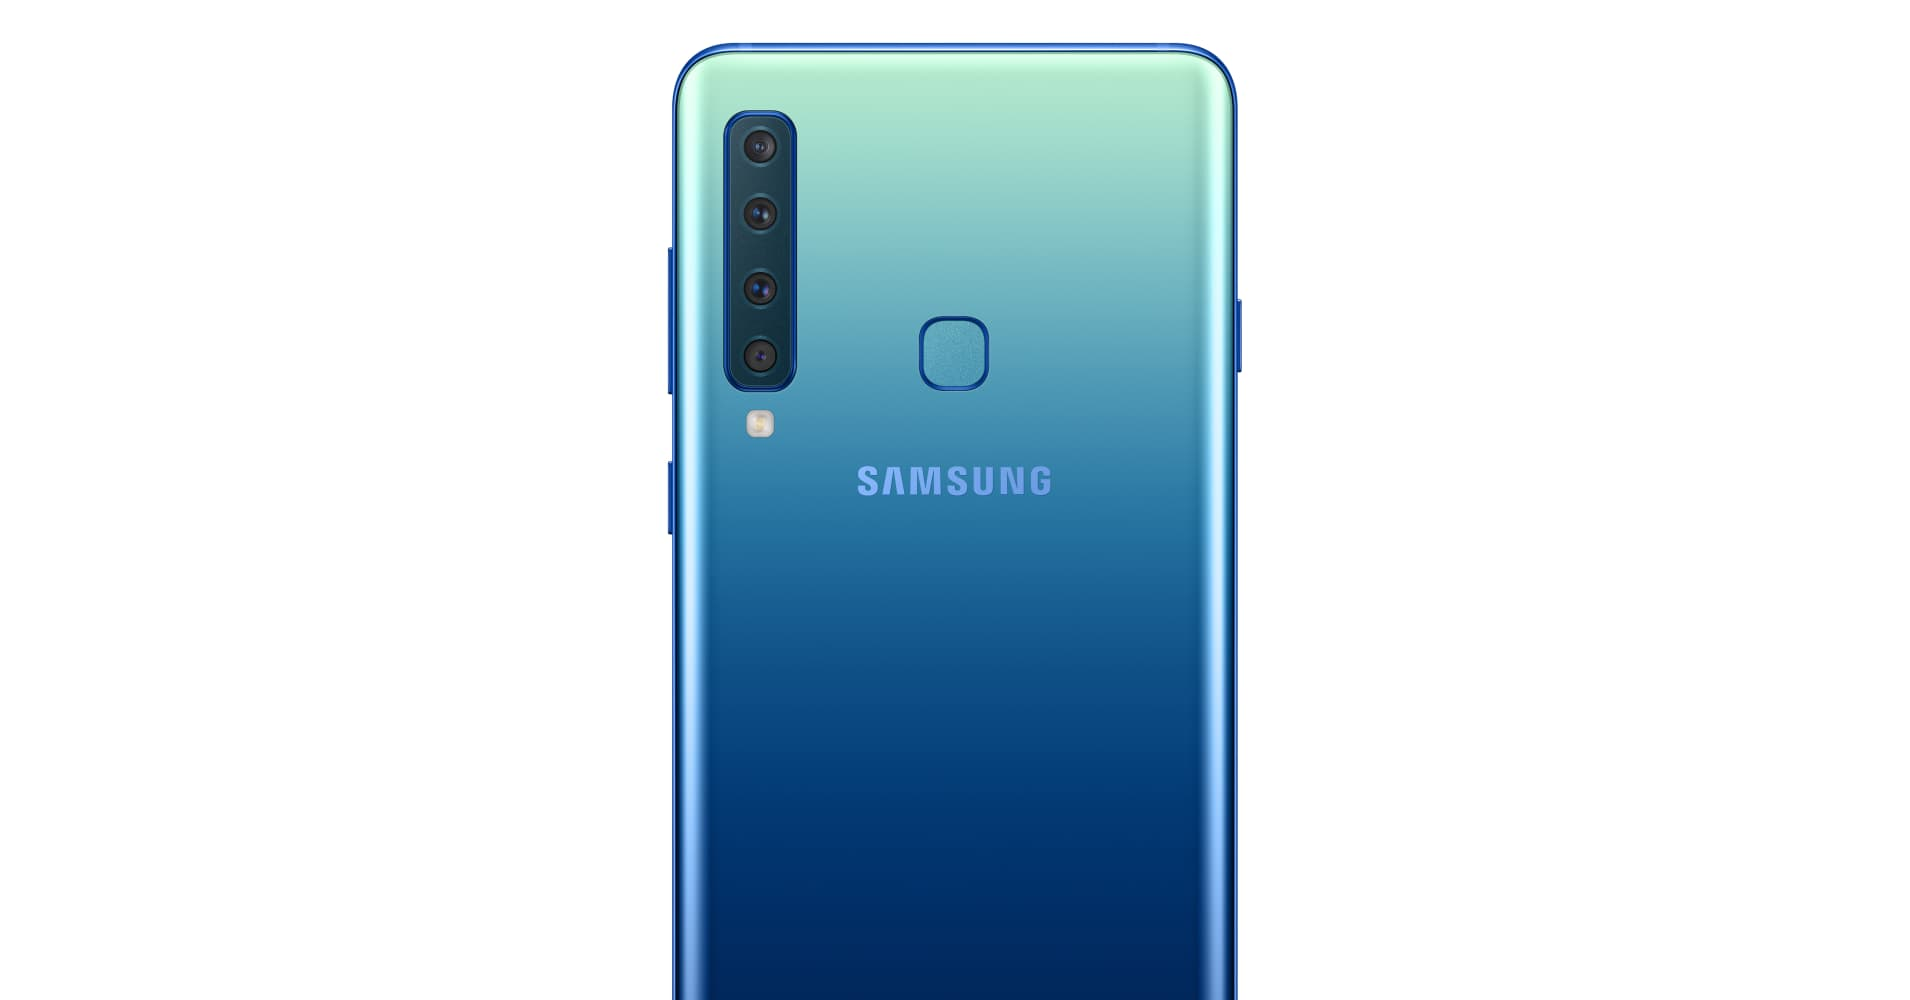 Samsung unveils the Galaxy A9, the world's first smartphone with a quad lens rear camera